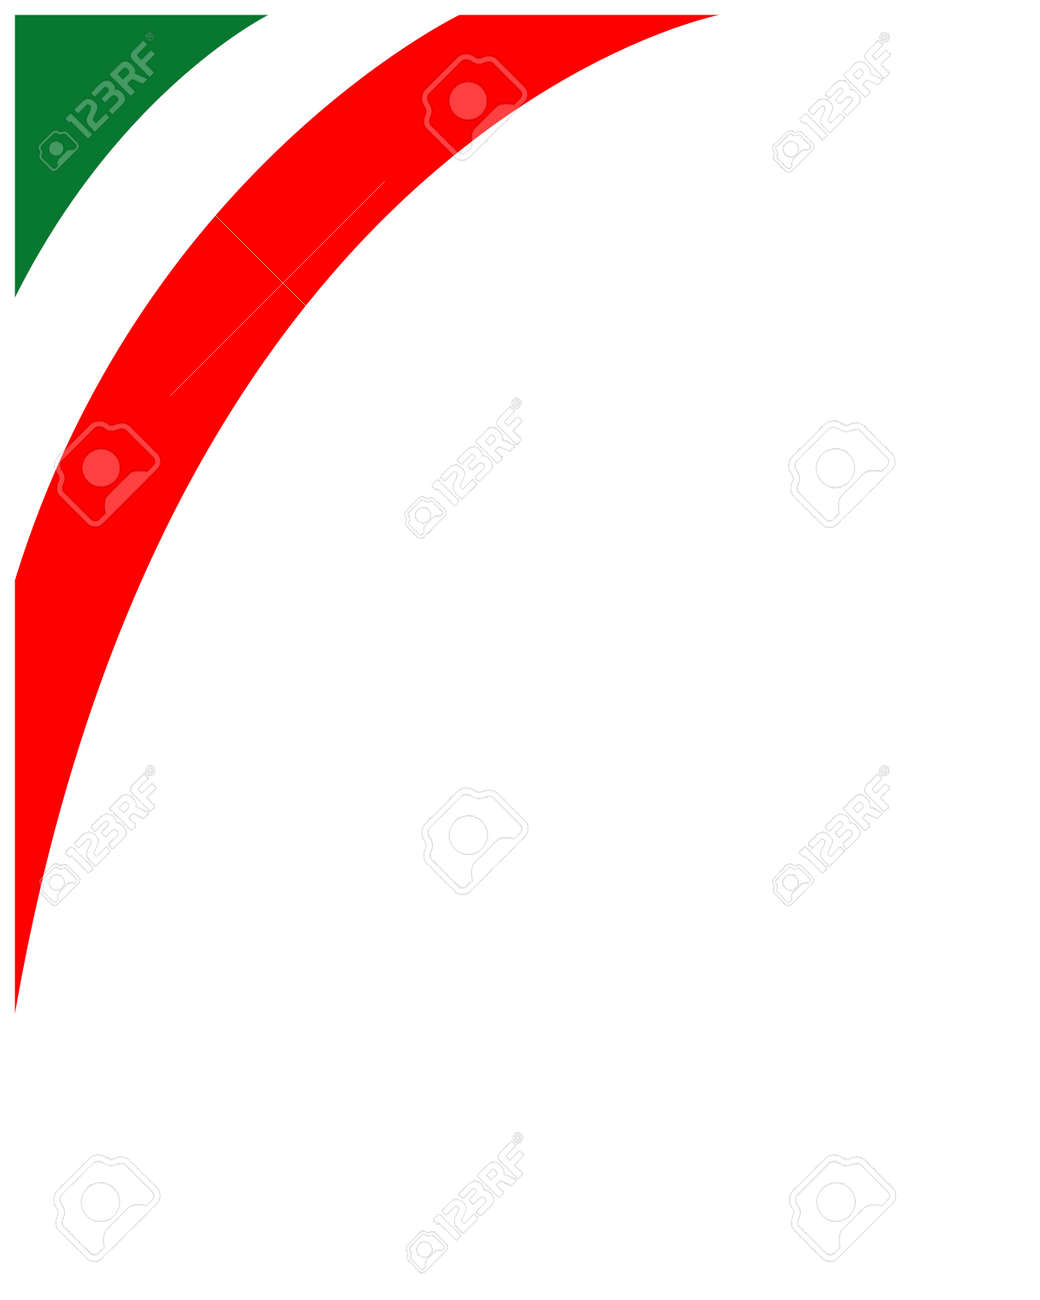 Italian flag corner frame with empty space for your text. - 140272929